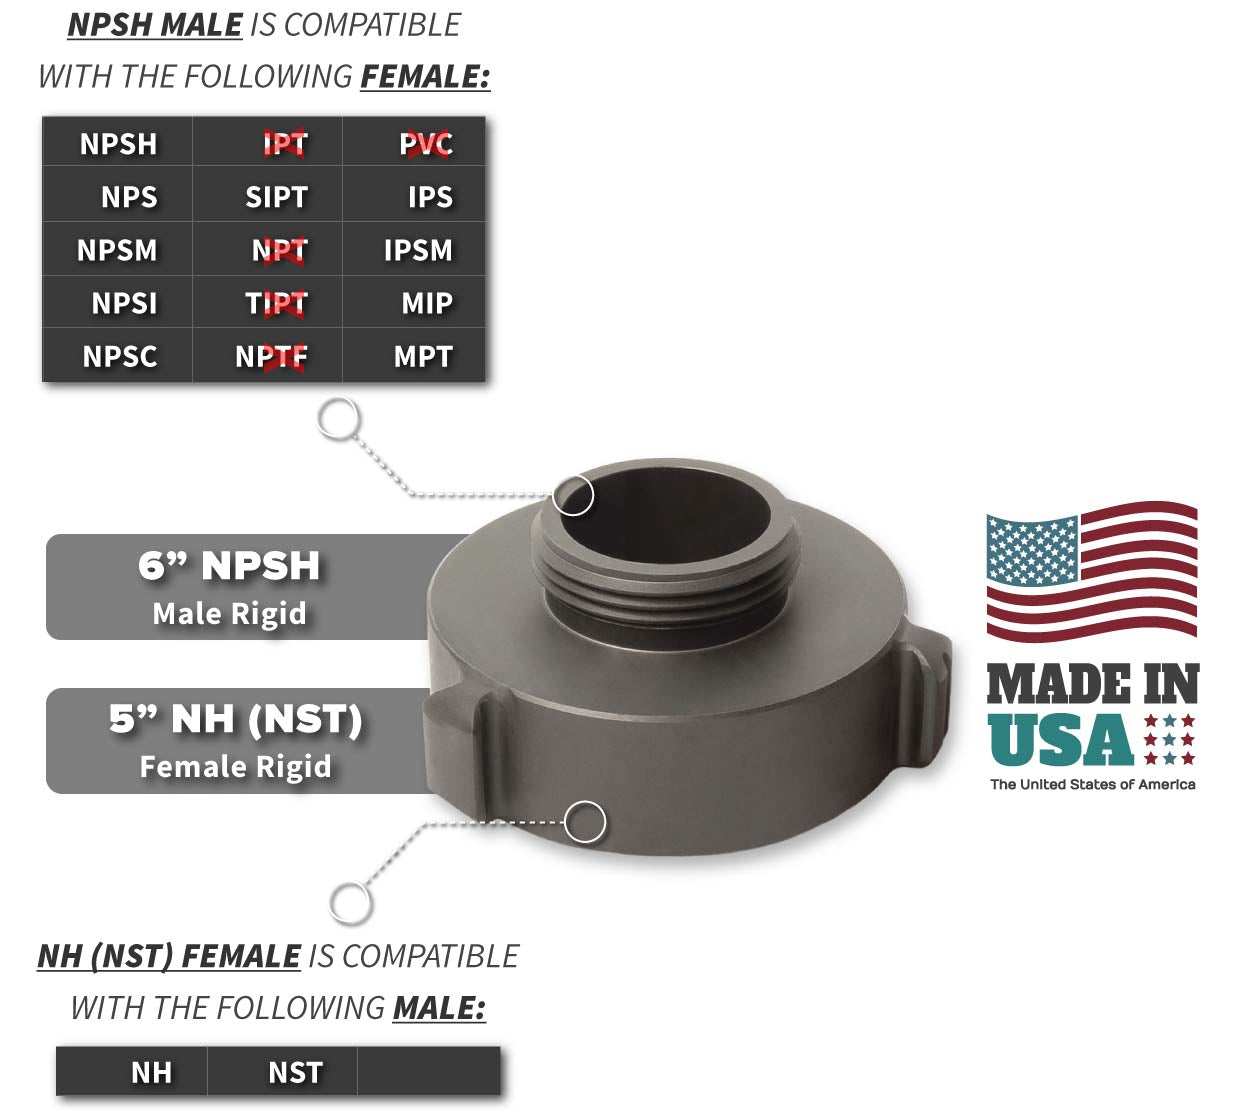 5 Inch NH-NST Female x 6 Inch NPSH Male Compatibility Thread Chart